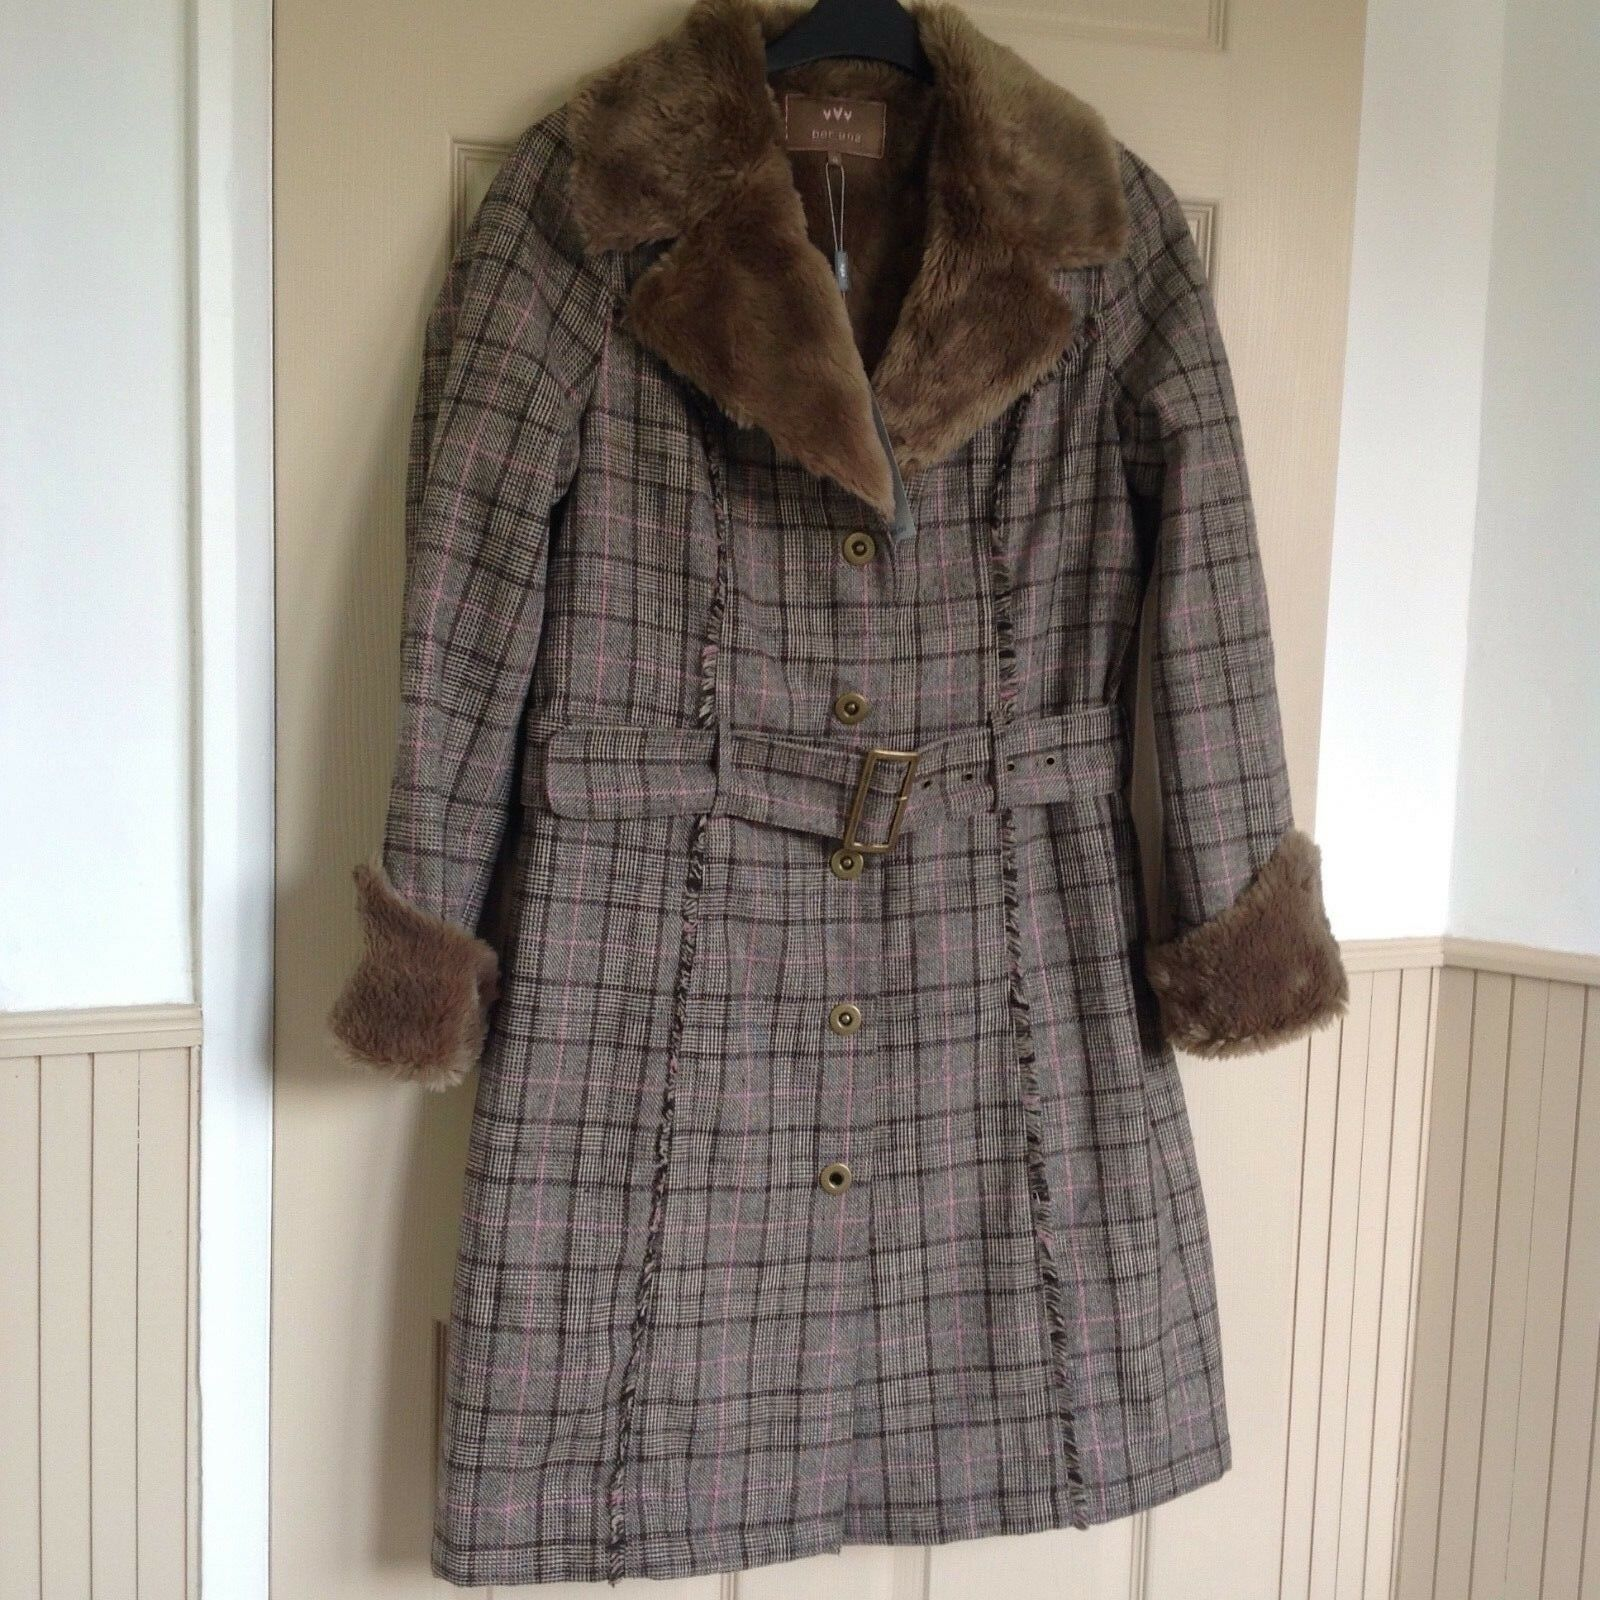 BNWT, PER UNA, COAT, SIZE M,BROWN MIX  WITH FAUX FUR COLLAR & CUFFS,50% WOOL